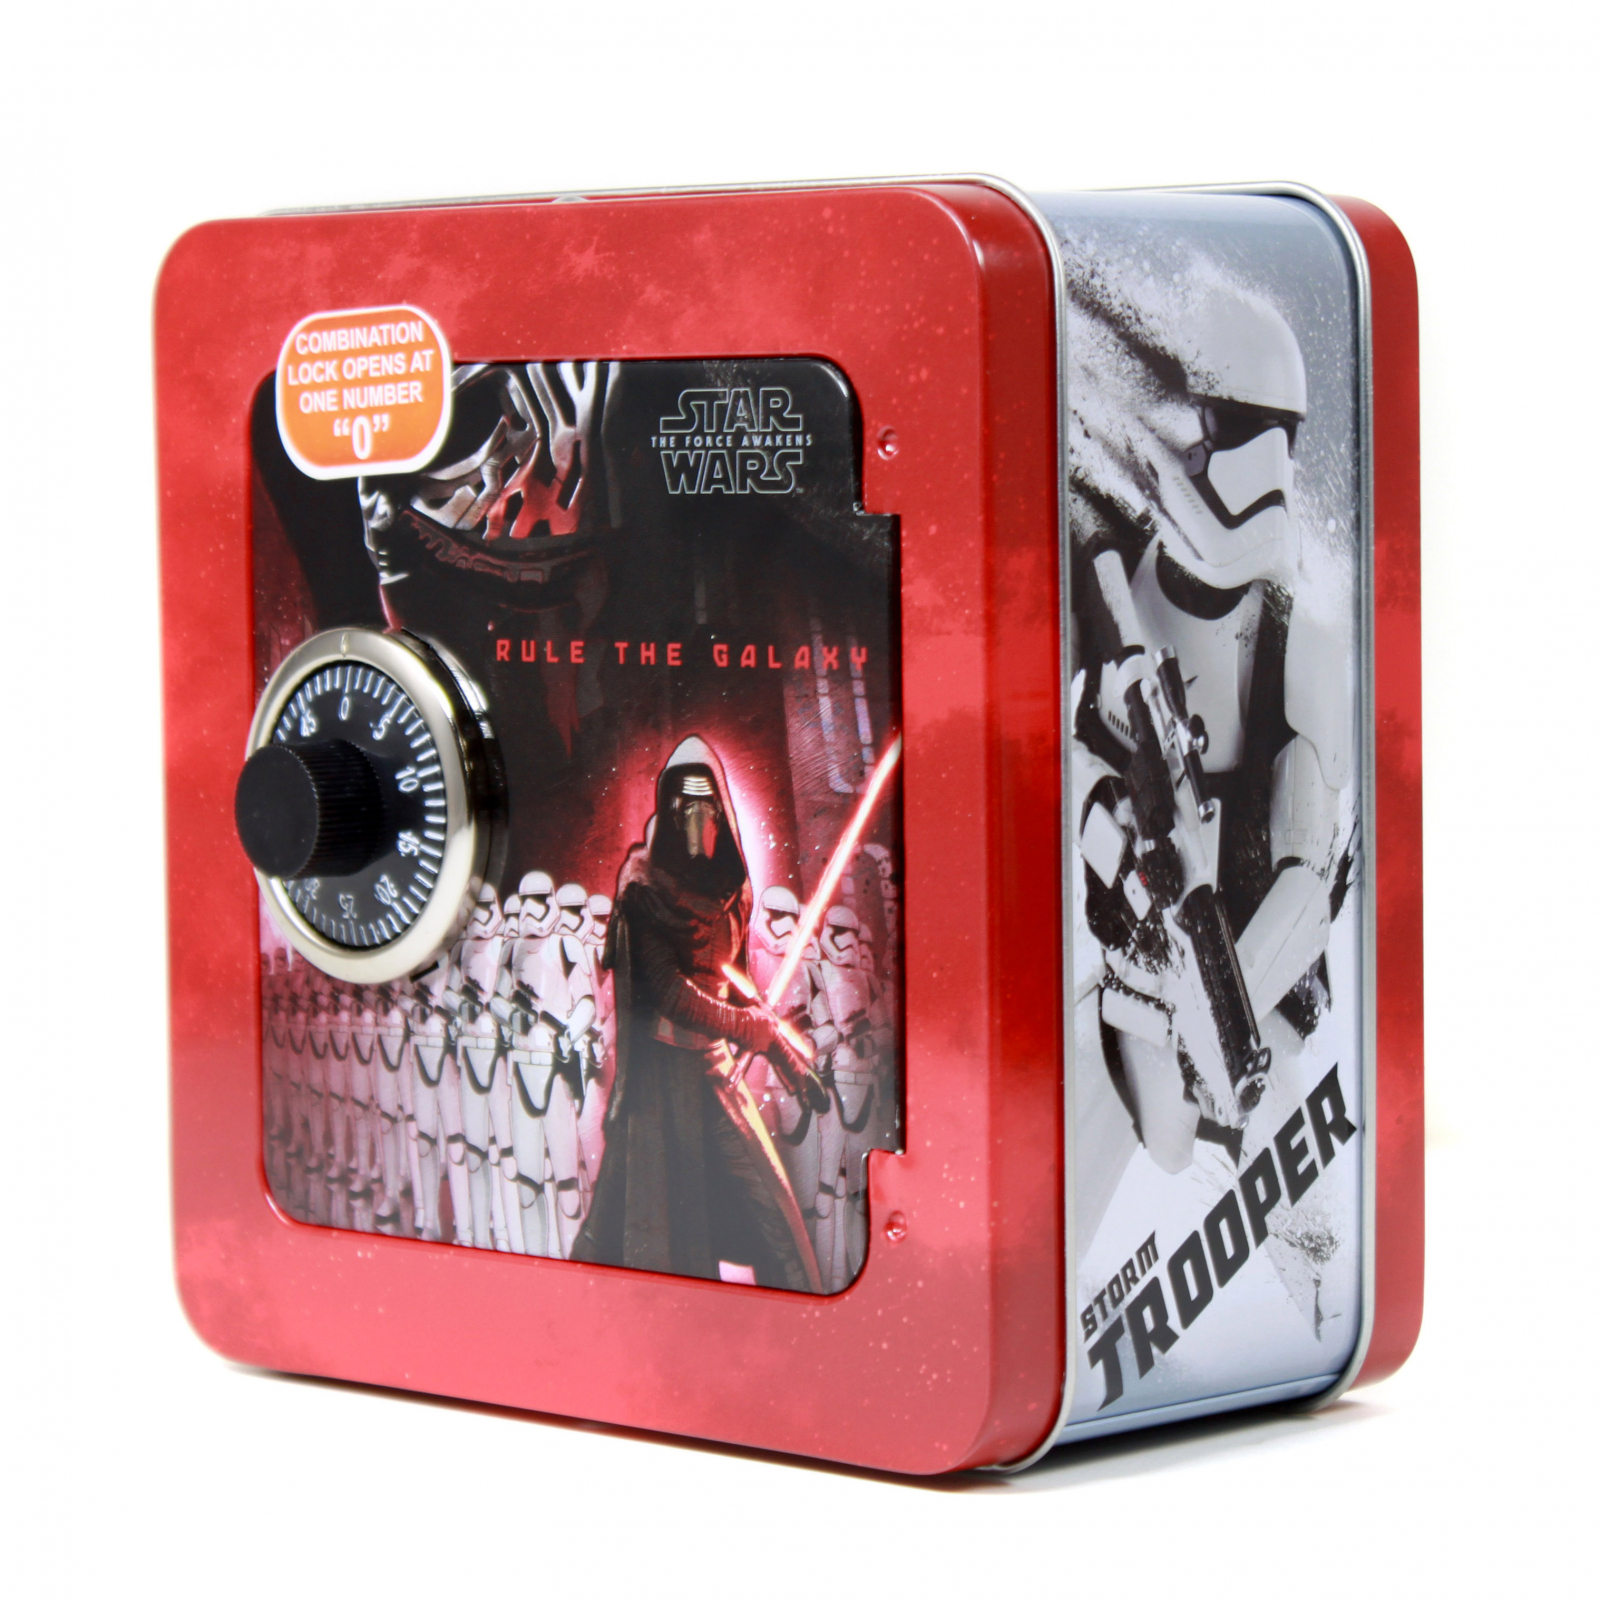 Star Wars The Force Awakens Combination Lock Safe Money Bank